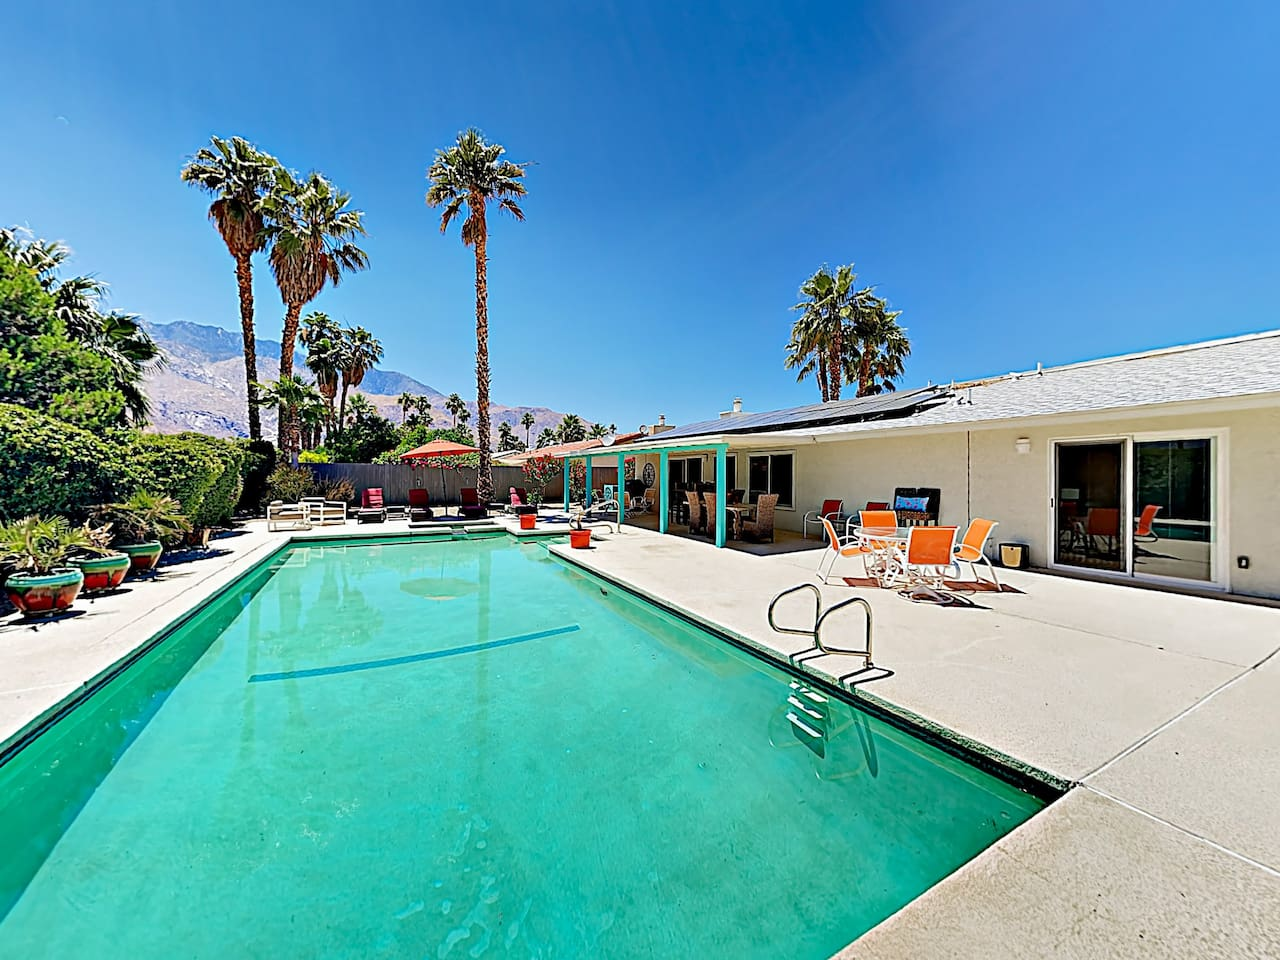 Welcome to Palm Springs! This desert oasis is professionally managed by TurnKey Vacation Rentals.